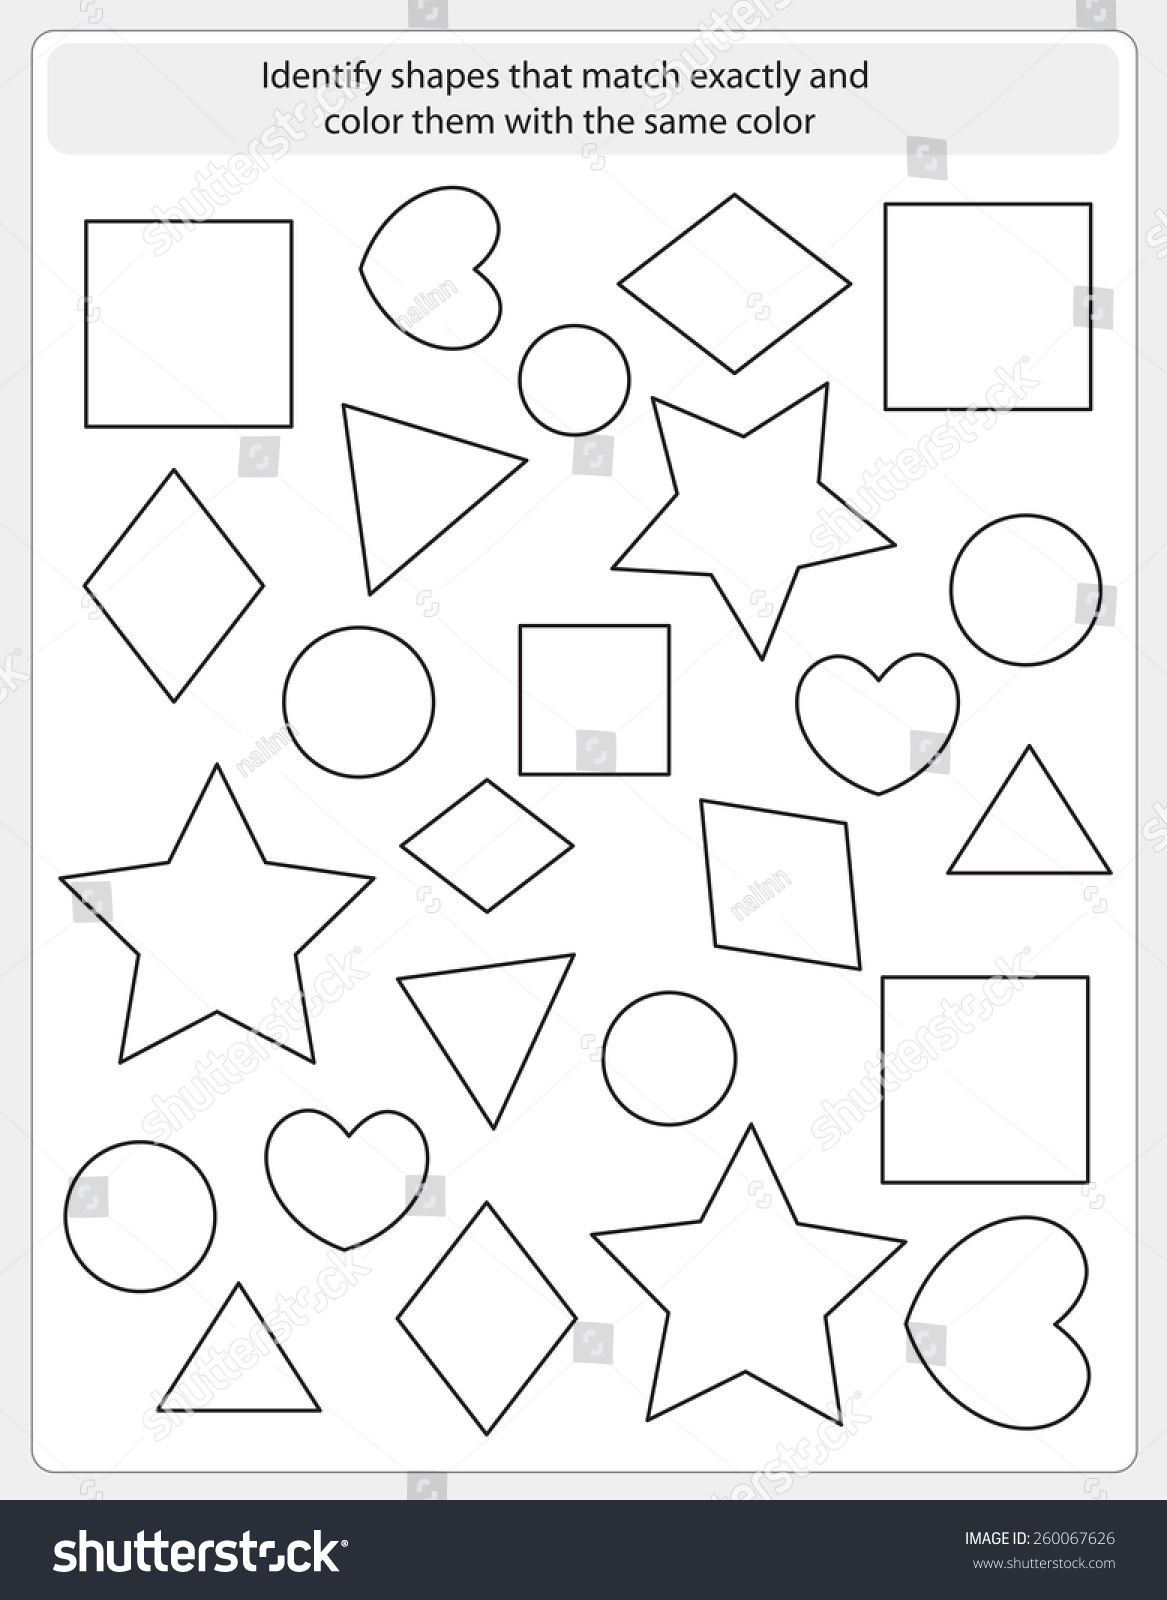 Matching Worksheets For Preschoolers